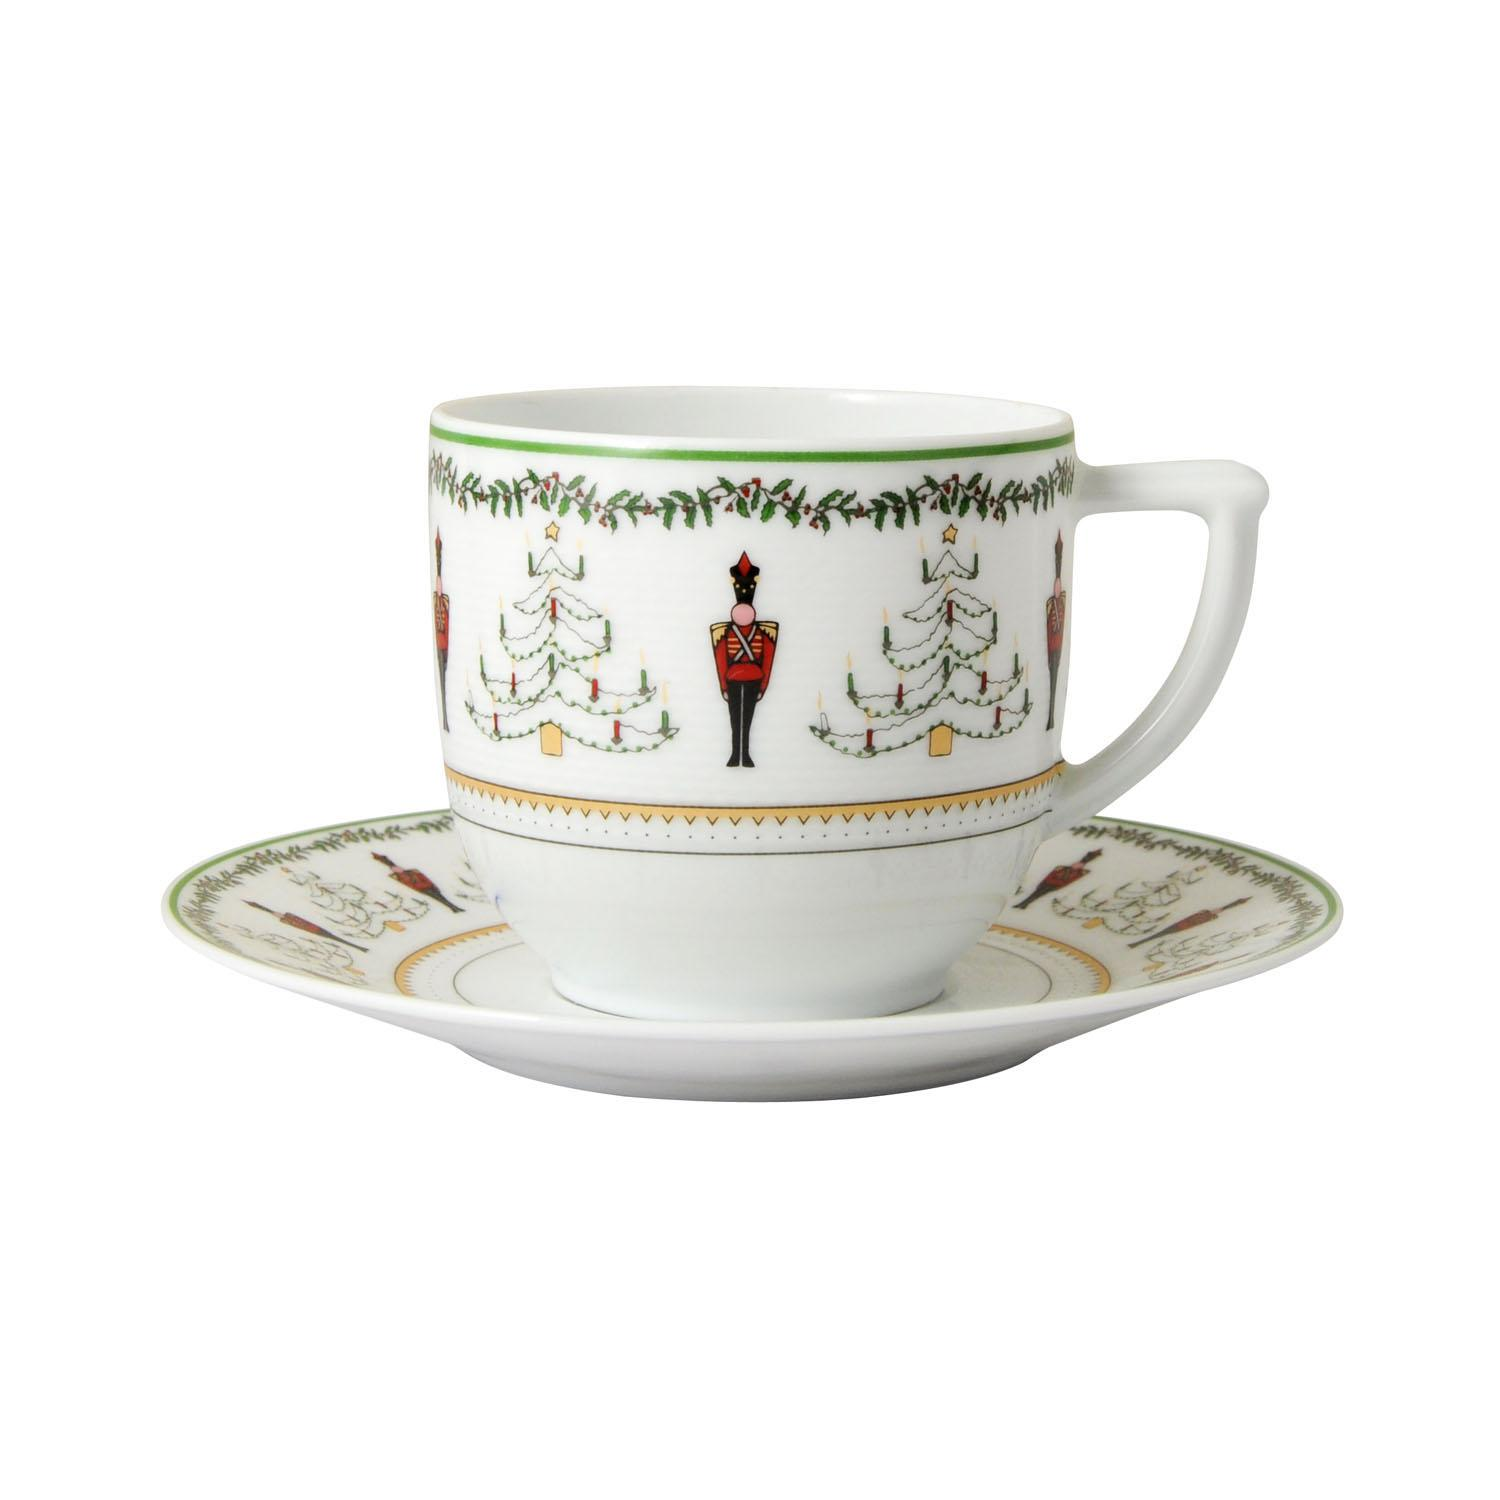 Bernardaud Grenadiers Coffee Saucer Only